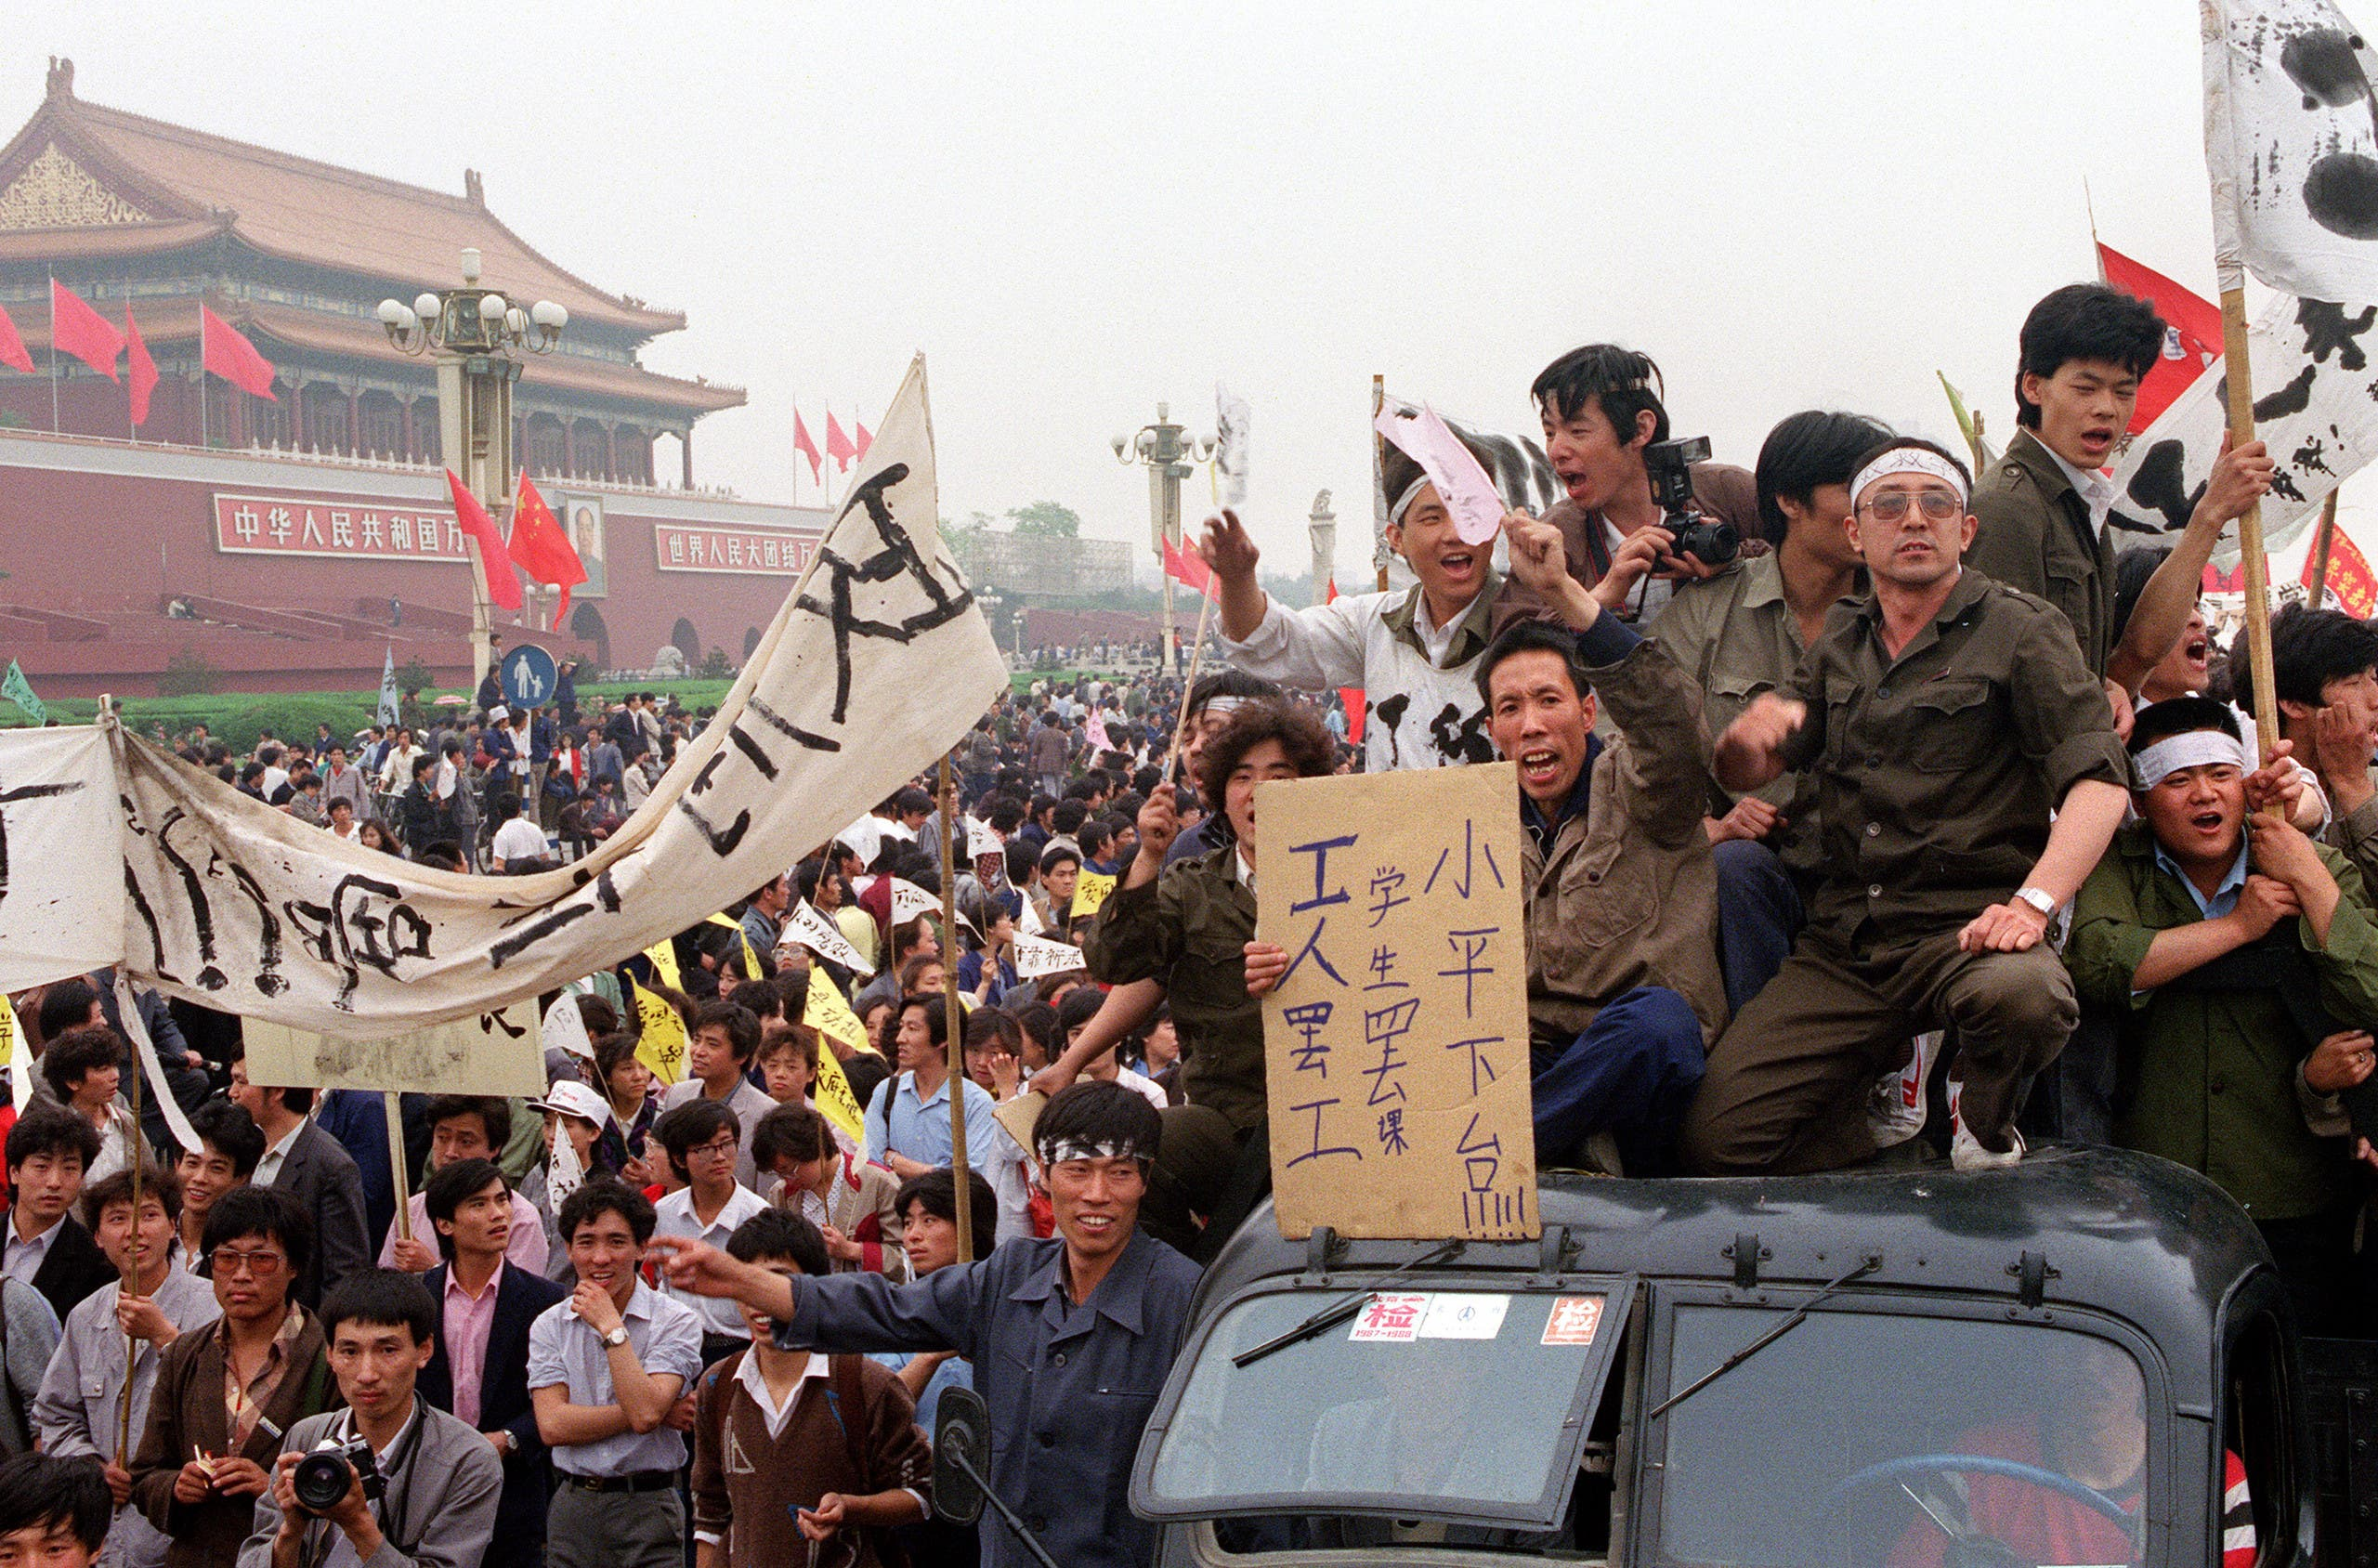 From the Tiananmen protests in Beijing in May 1989